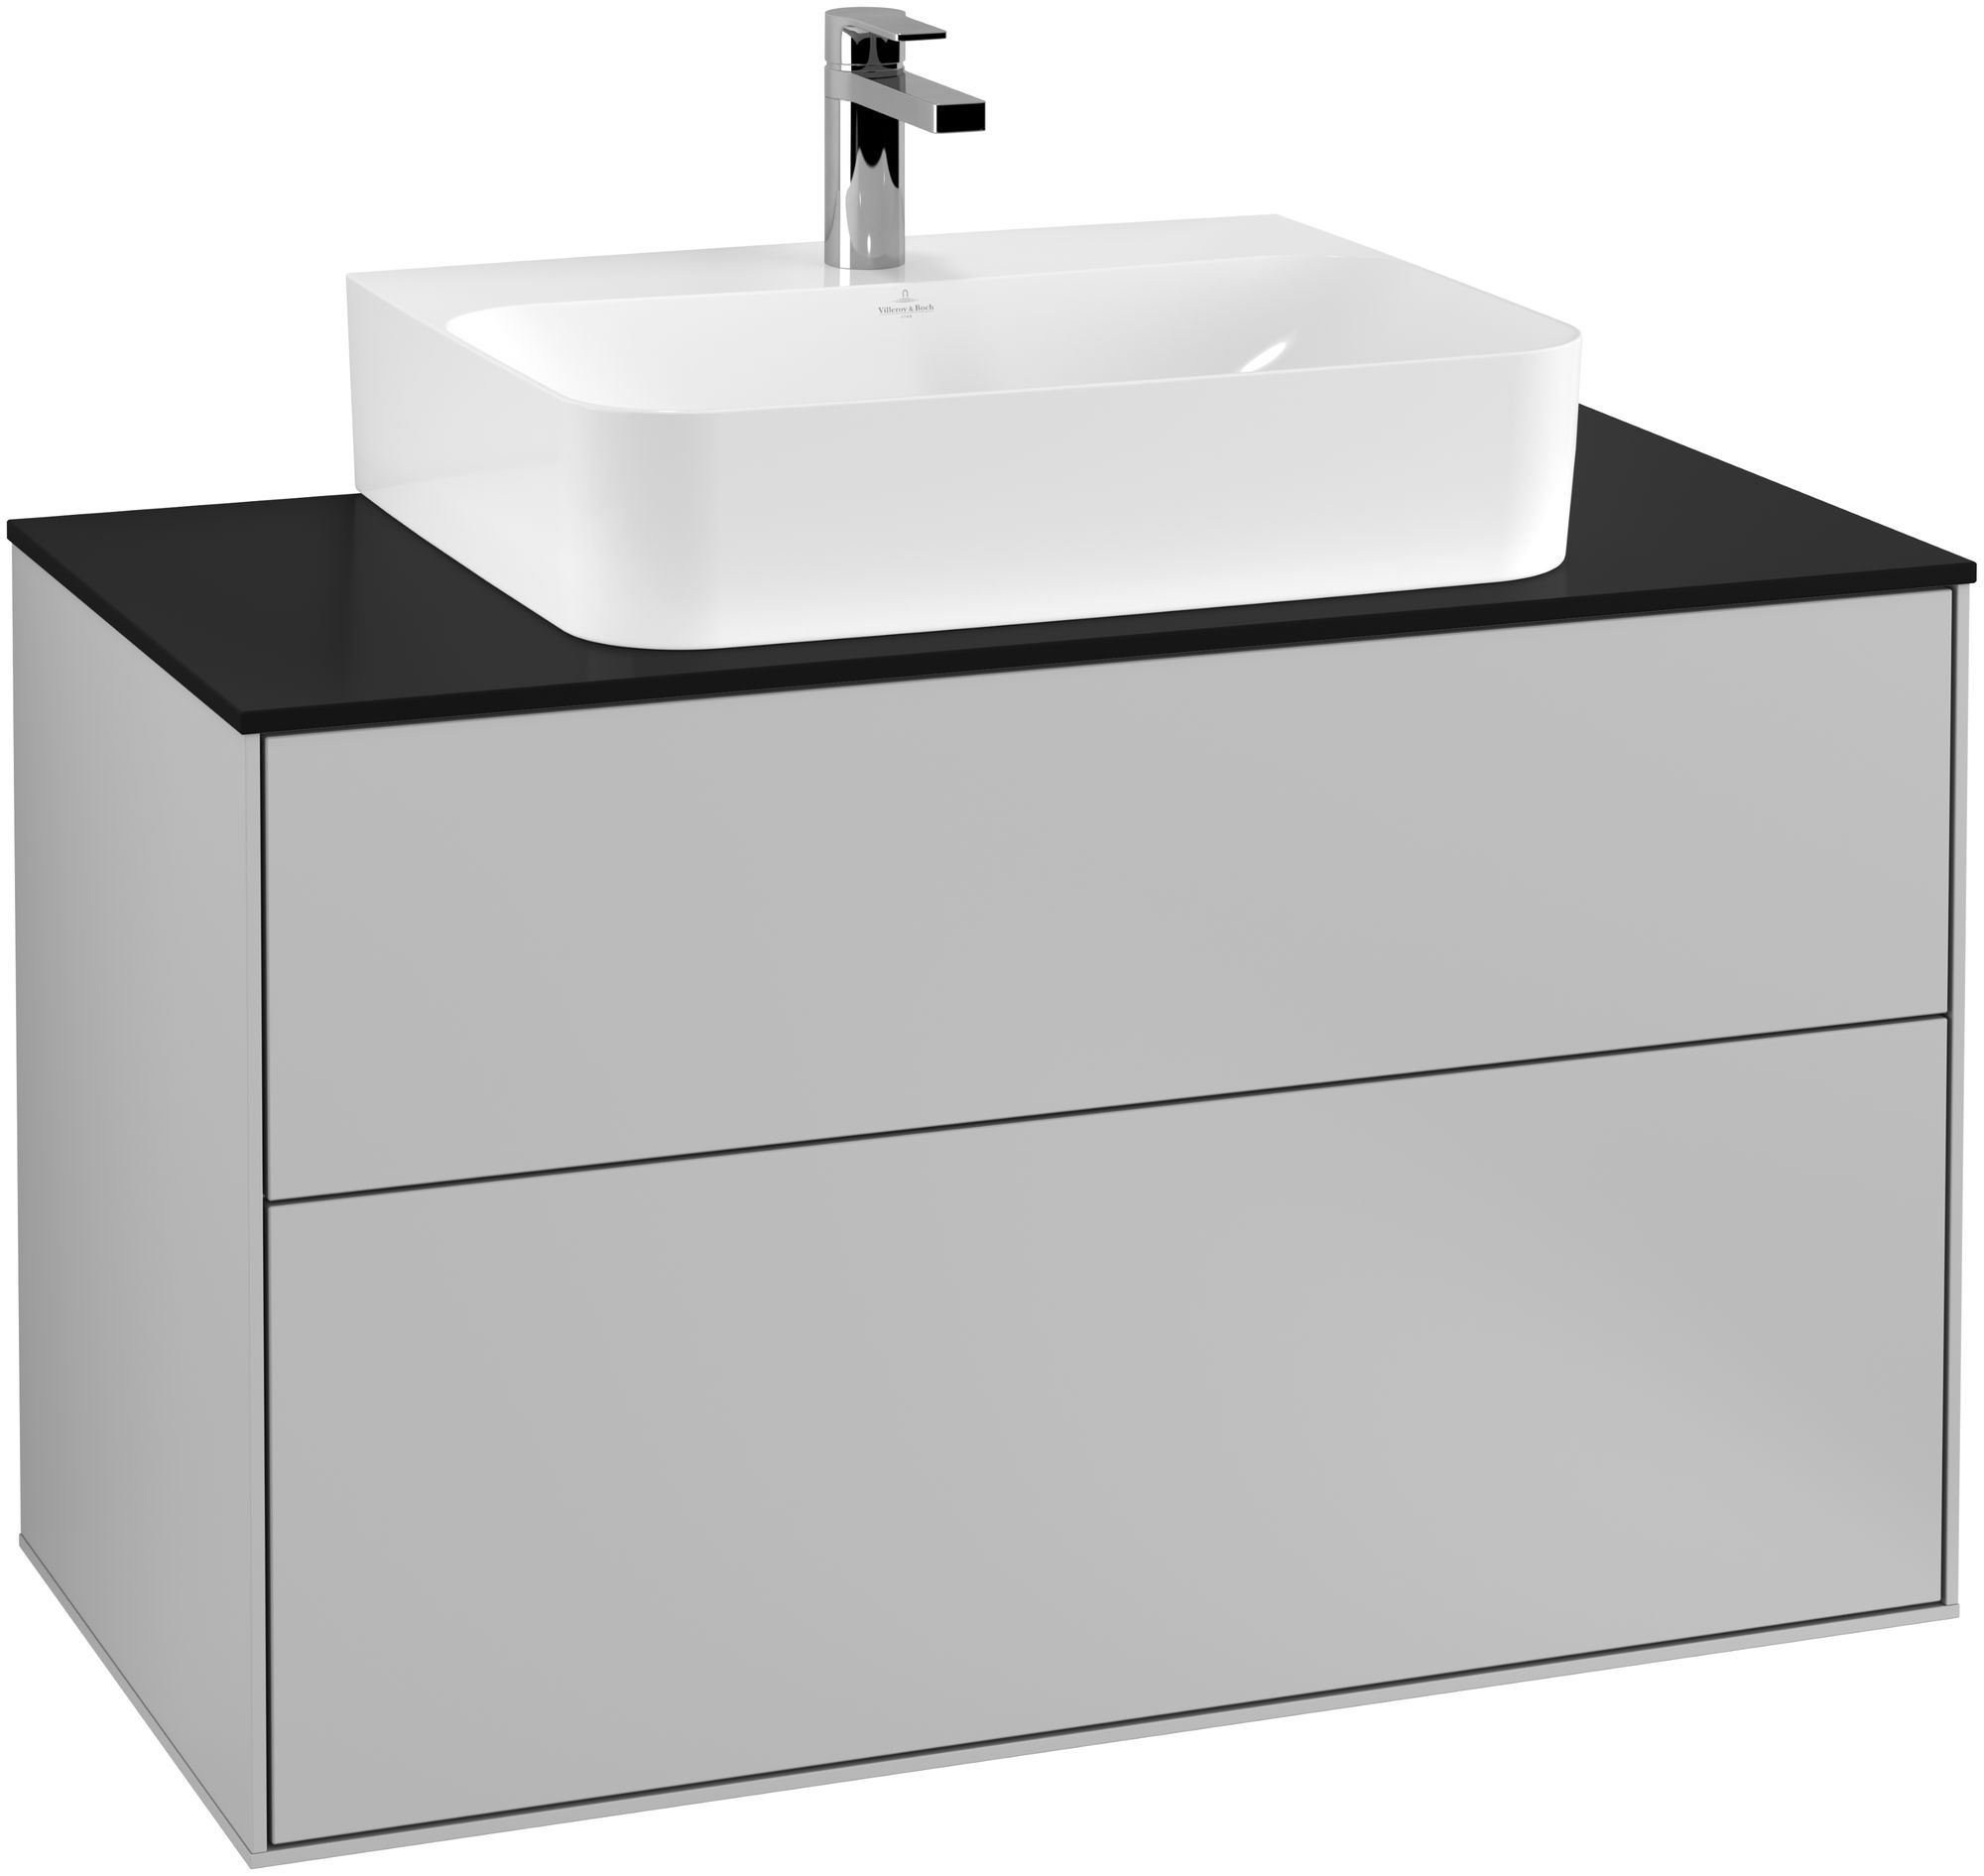 Villeroy & Boch Finion G10 Waschtischunterschrank 2 Auszüge Waschtisch mittig LED-Beleuchtung B:100xH:60,3xT:50,1cm Front, Korpus: Light Grey Matt, Glasplatte: Black Matt G10200GJ